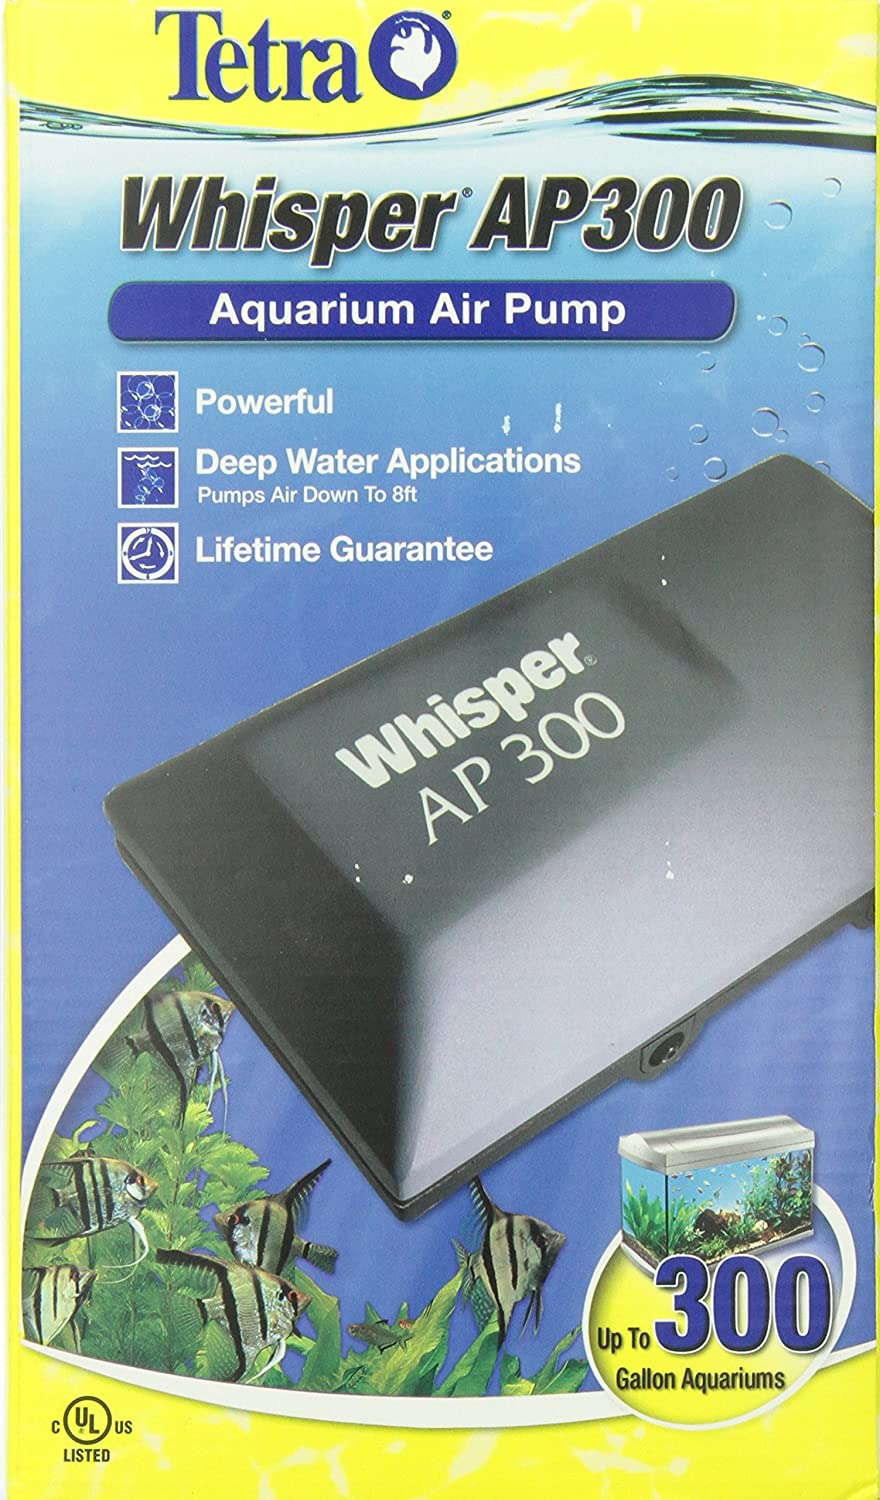 91Zm5Fak 4L._SL1500_ amazon com tetra 26075 whisper aquarium air pump ap300, up to  at readyjetset.co